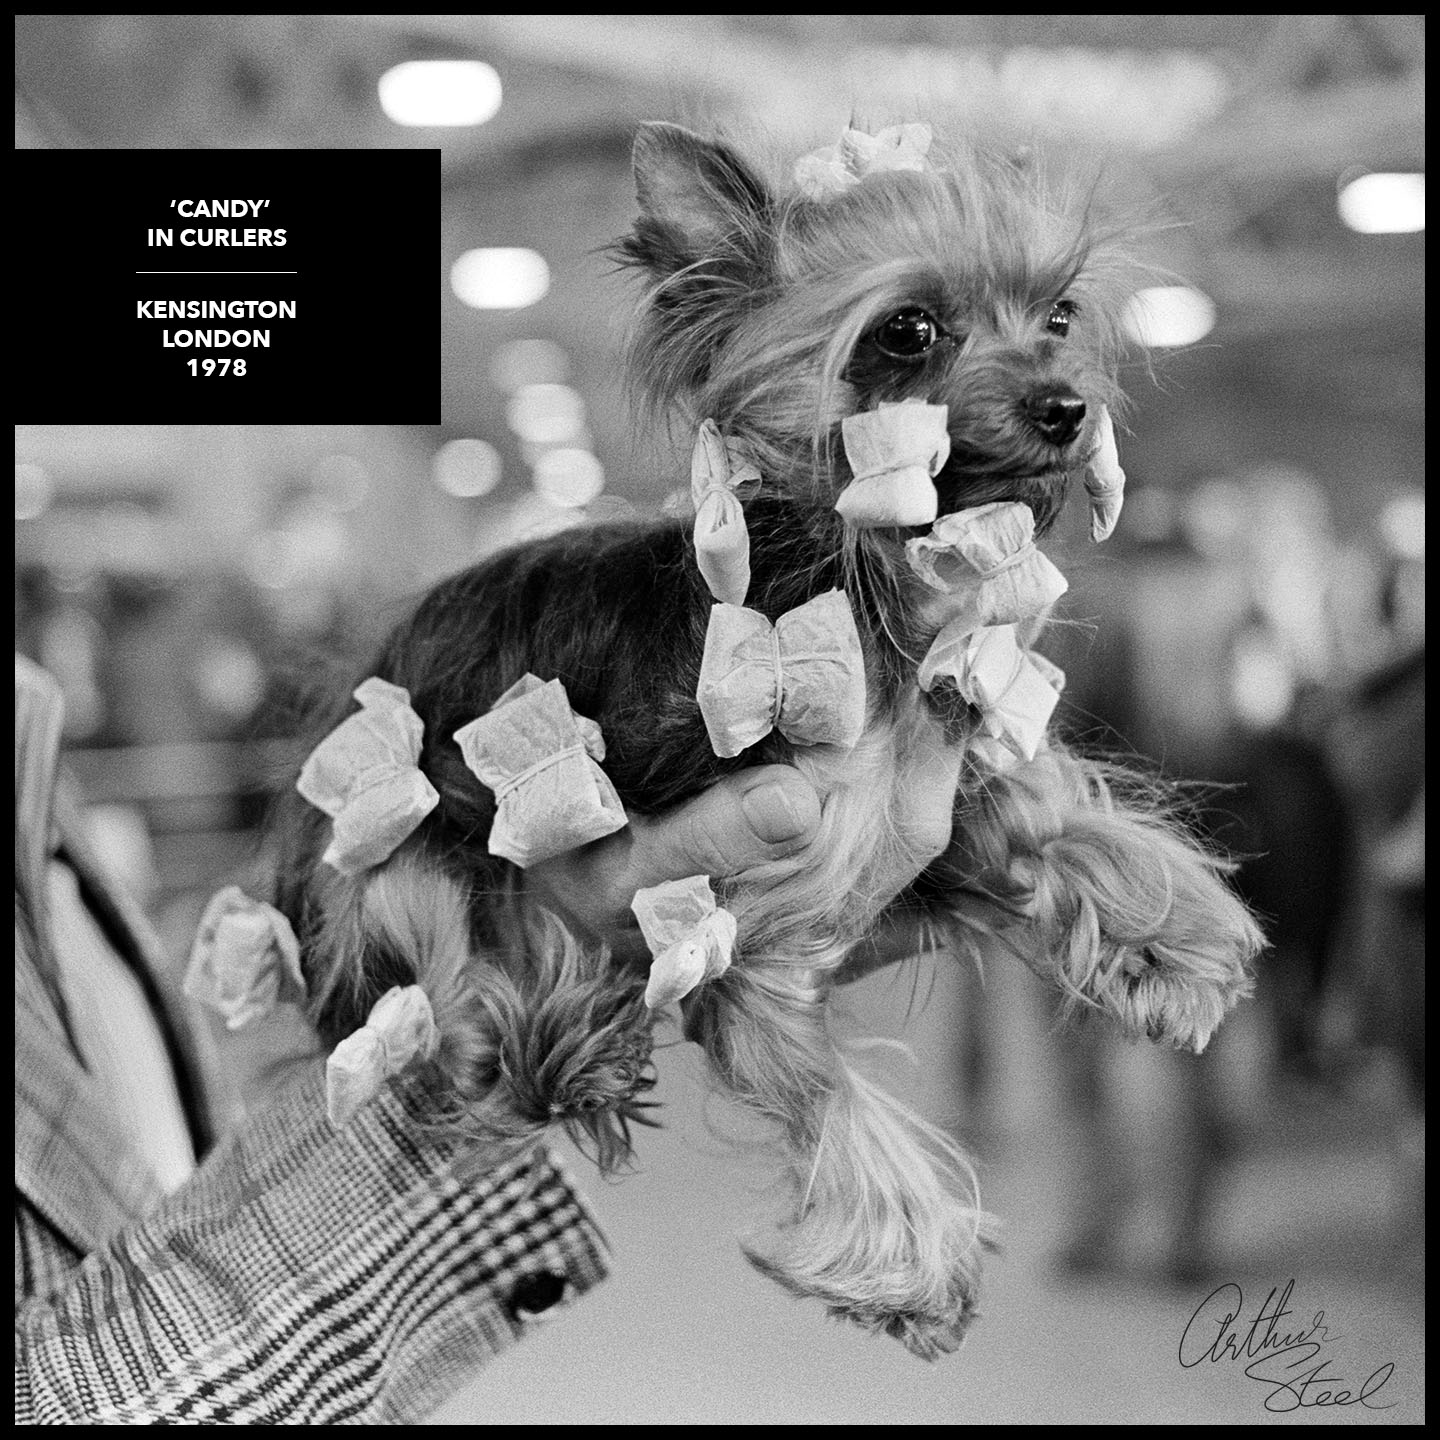 yorkshire_terrier_candy_crufts_dog_show_arthur_steel